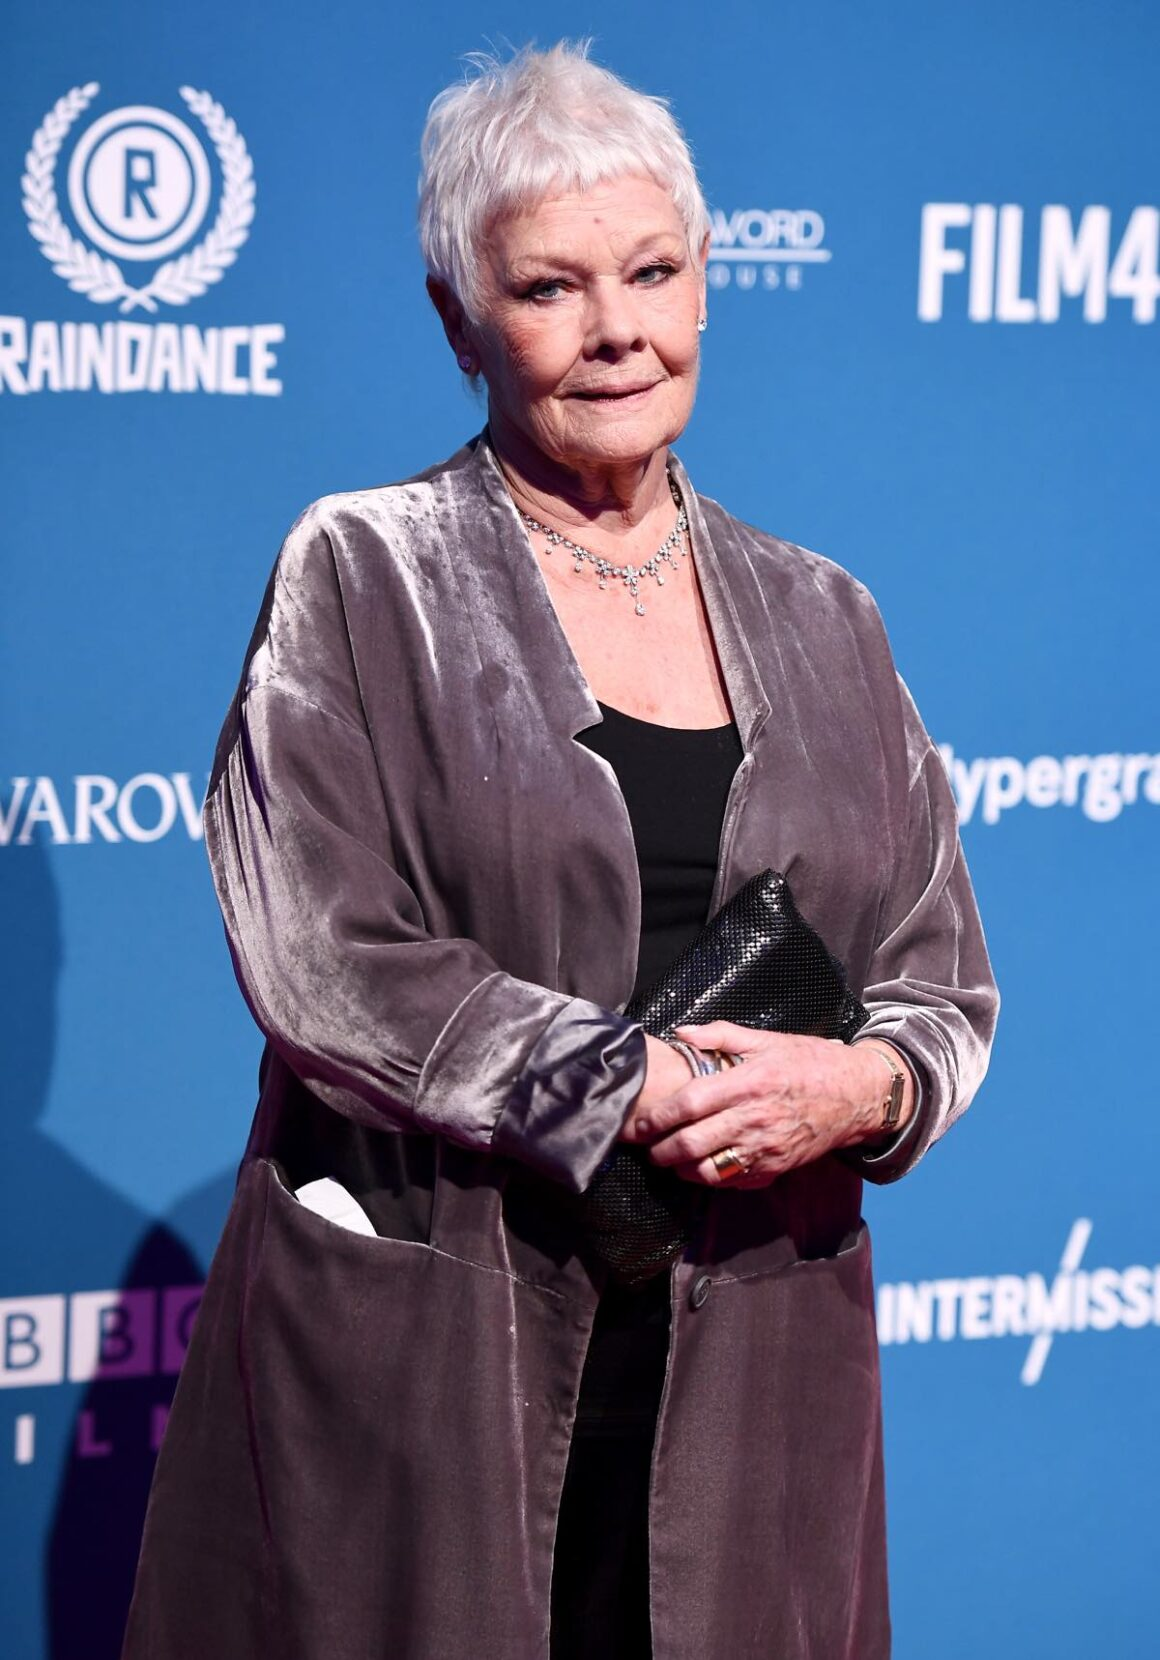 Dame Judi Dench The 21st British Independent Film Awards - Red Carpet Arrivals